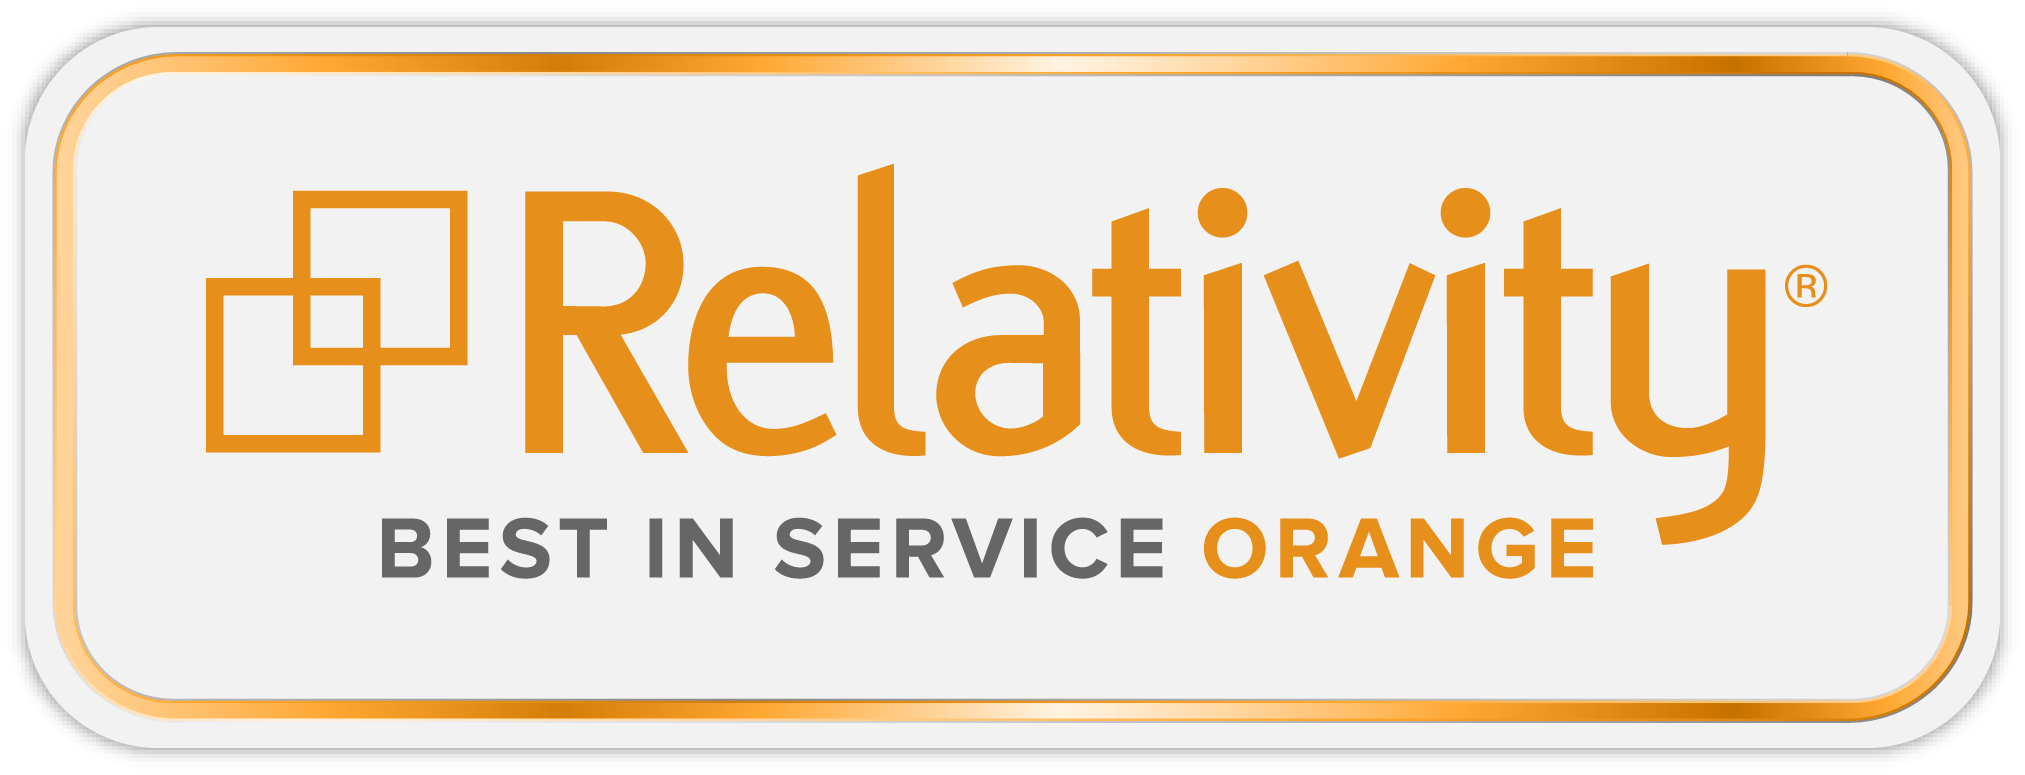 Relativity Best in Service Orange